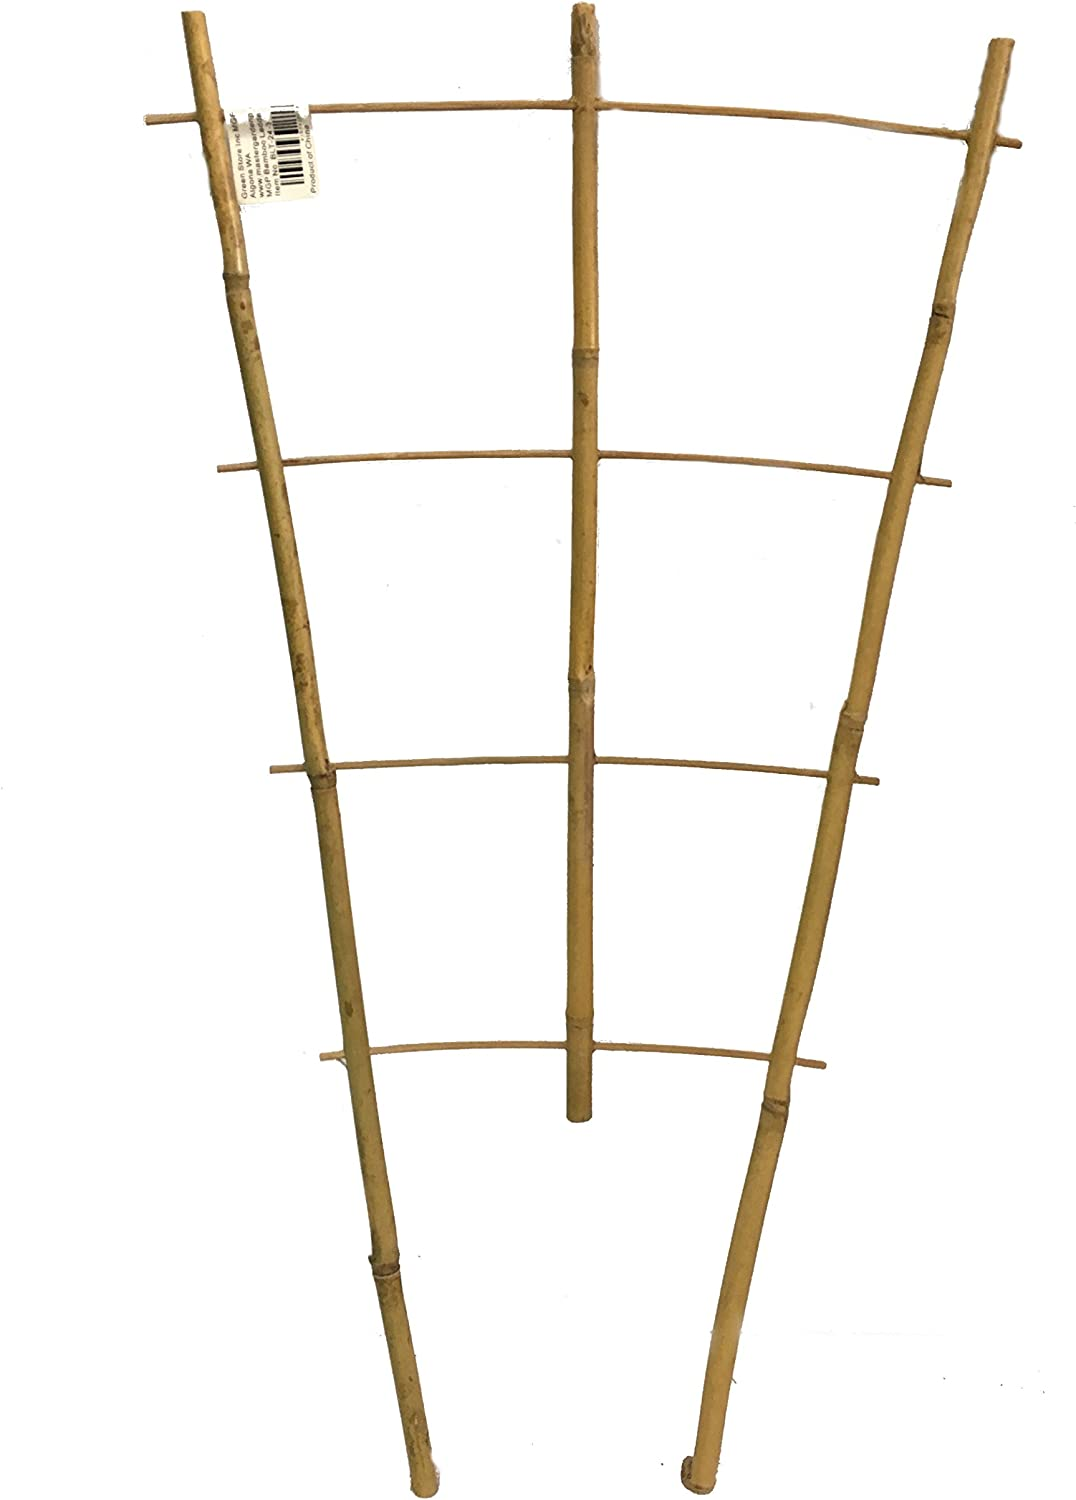 Natural Color Bamboo Trellis 24 inches Tall - Quantity 2